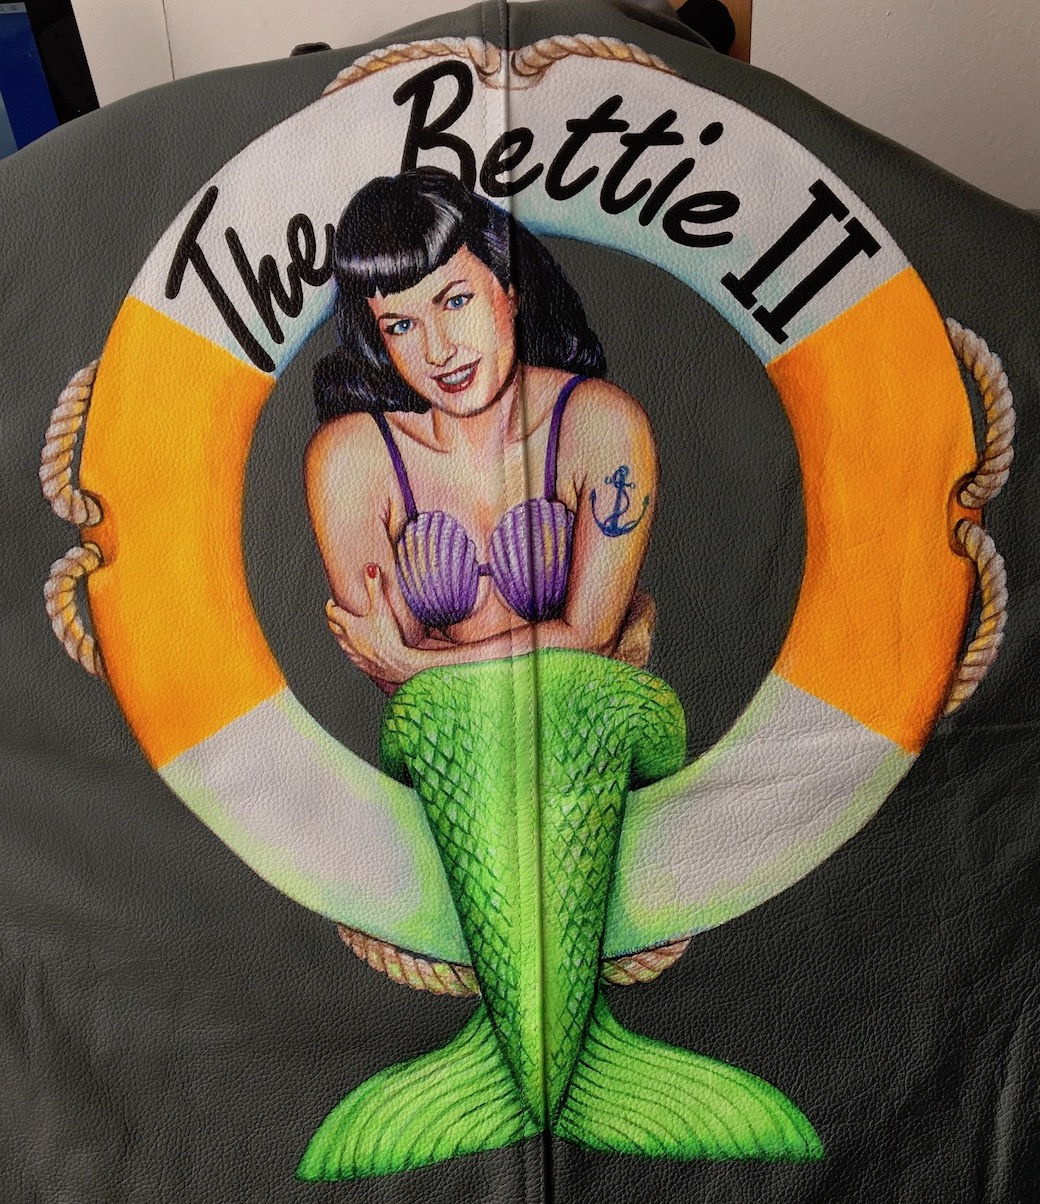 The Bettie II